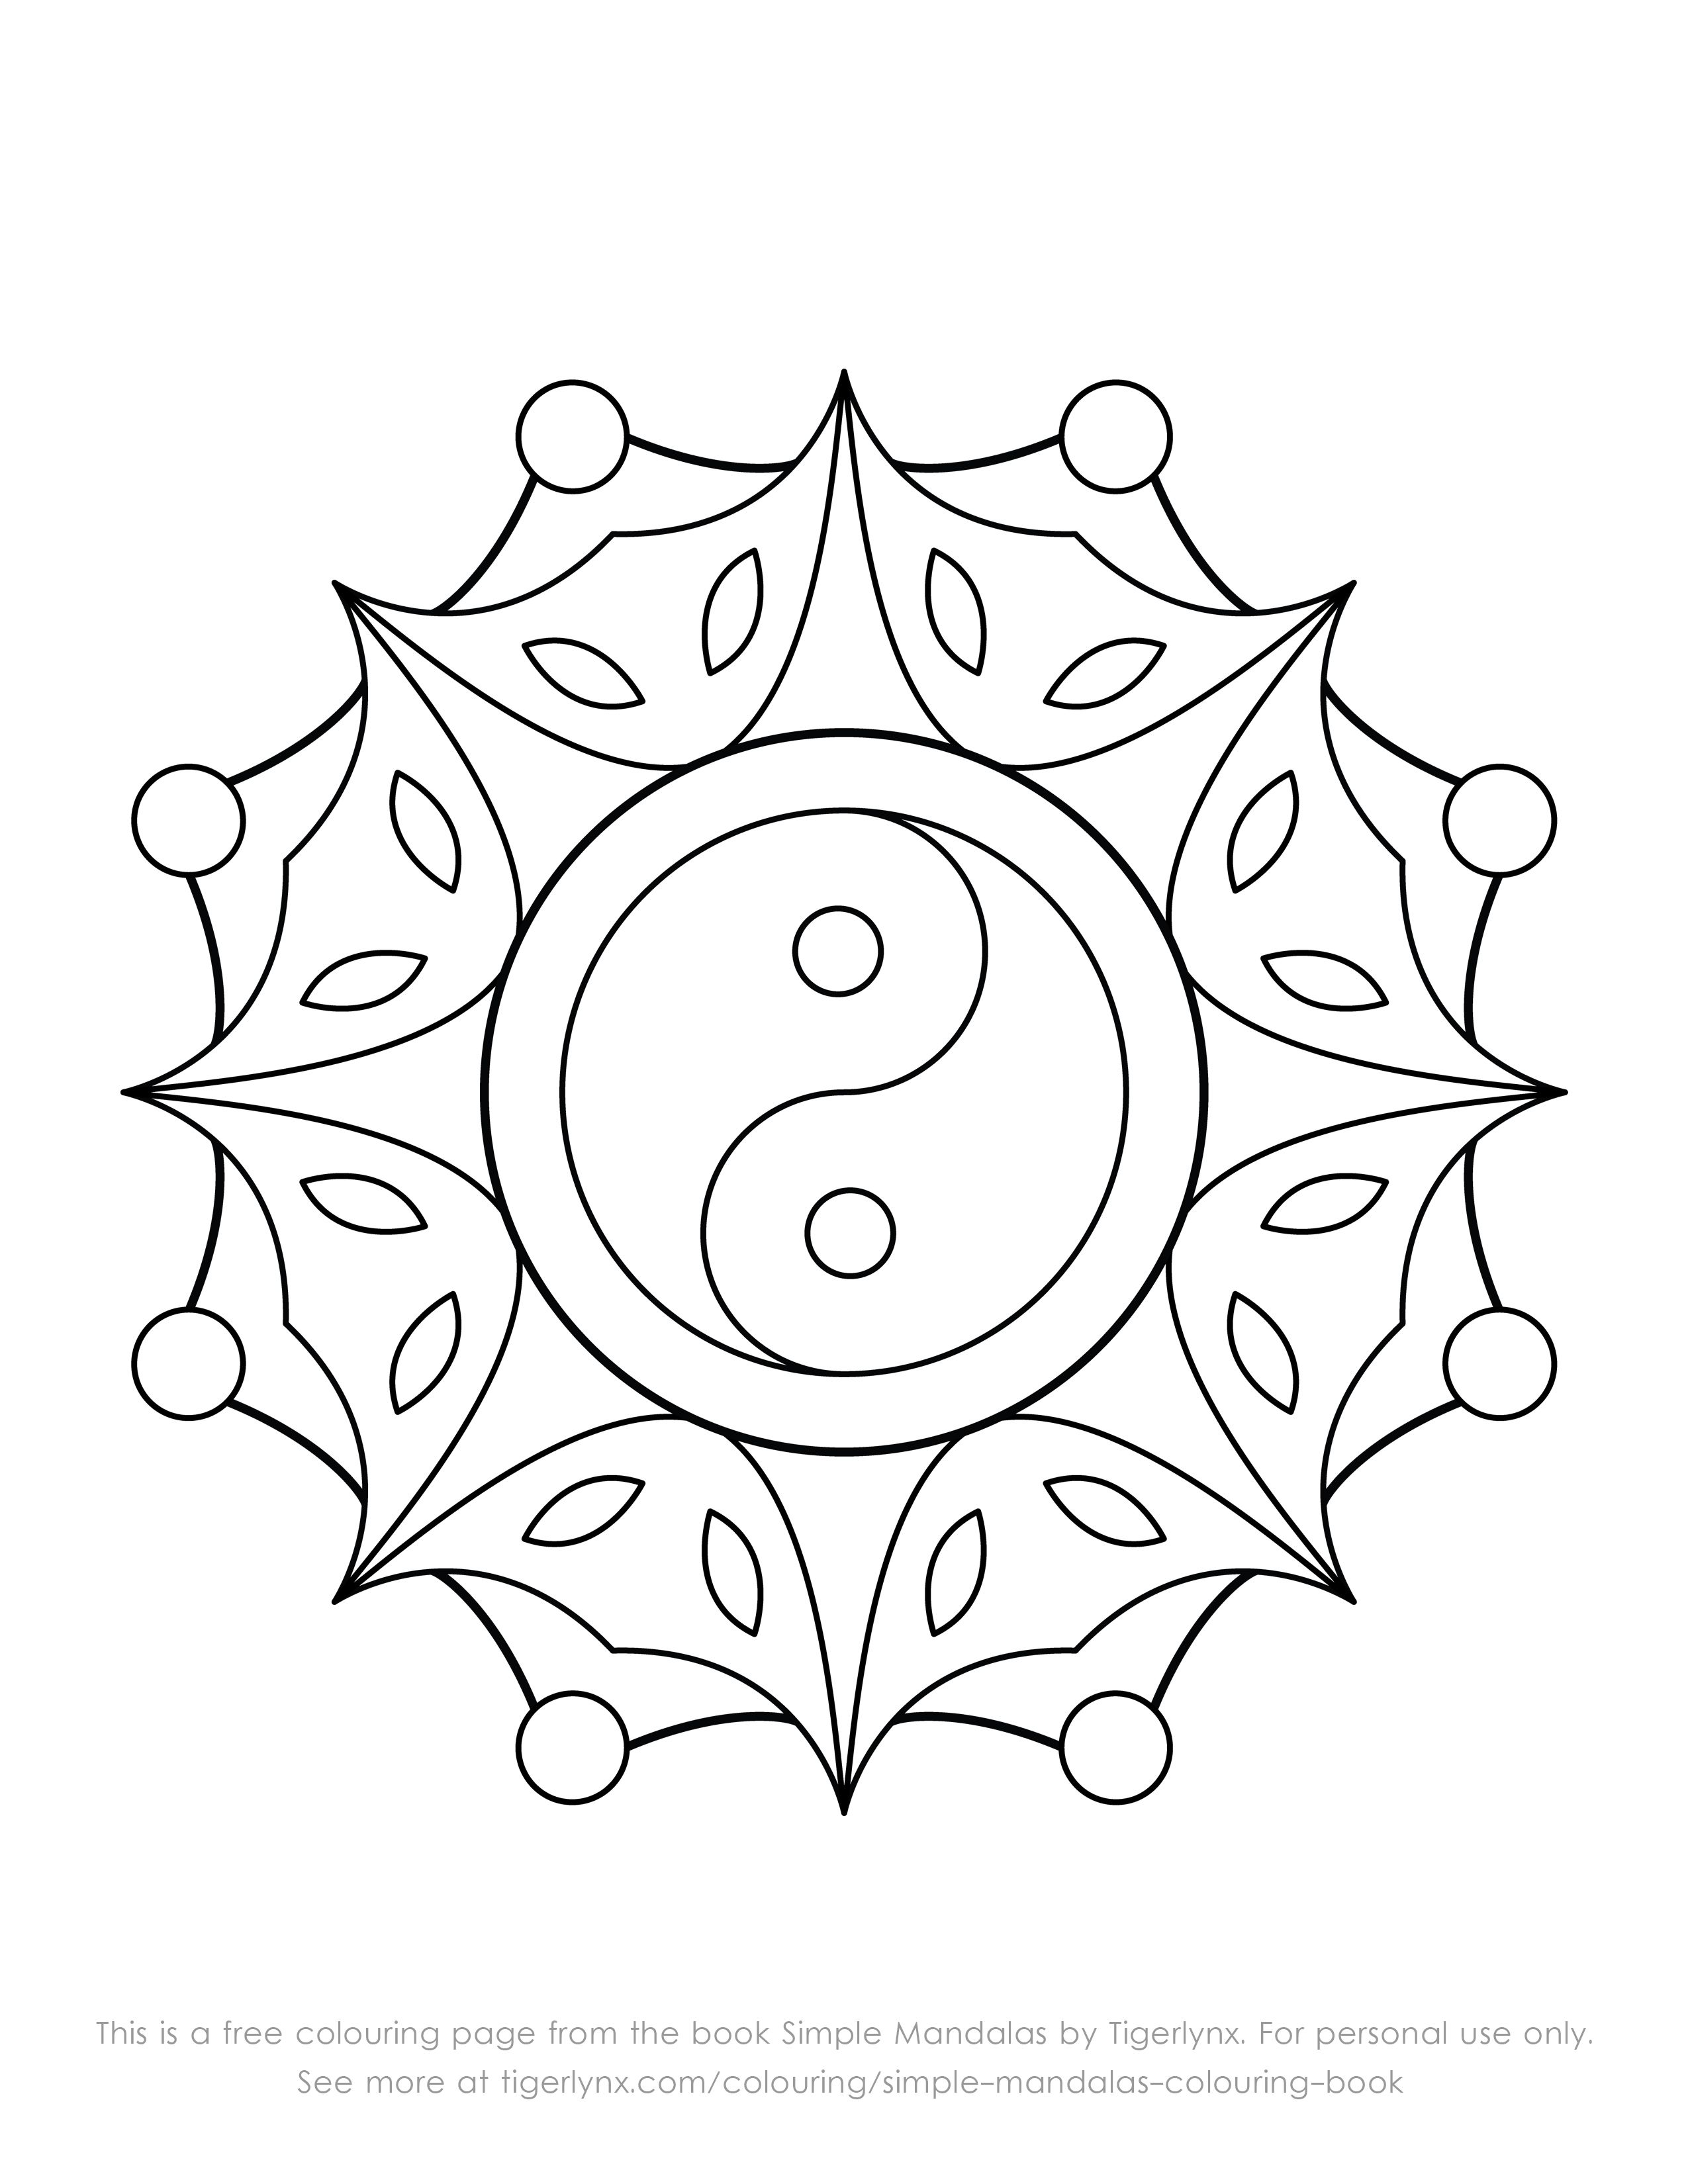 This Is A Free Colouring Page With An Easy Yin Yang Mandala Design